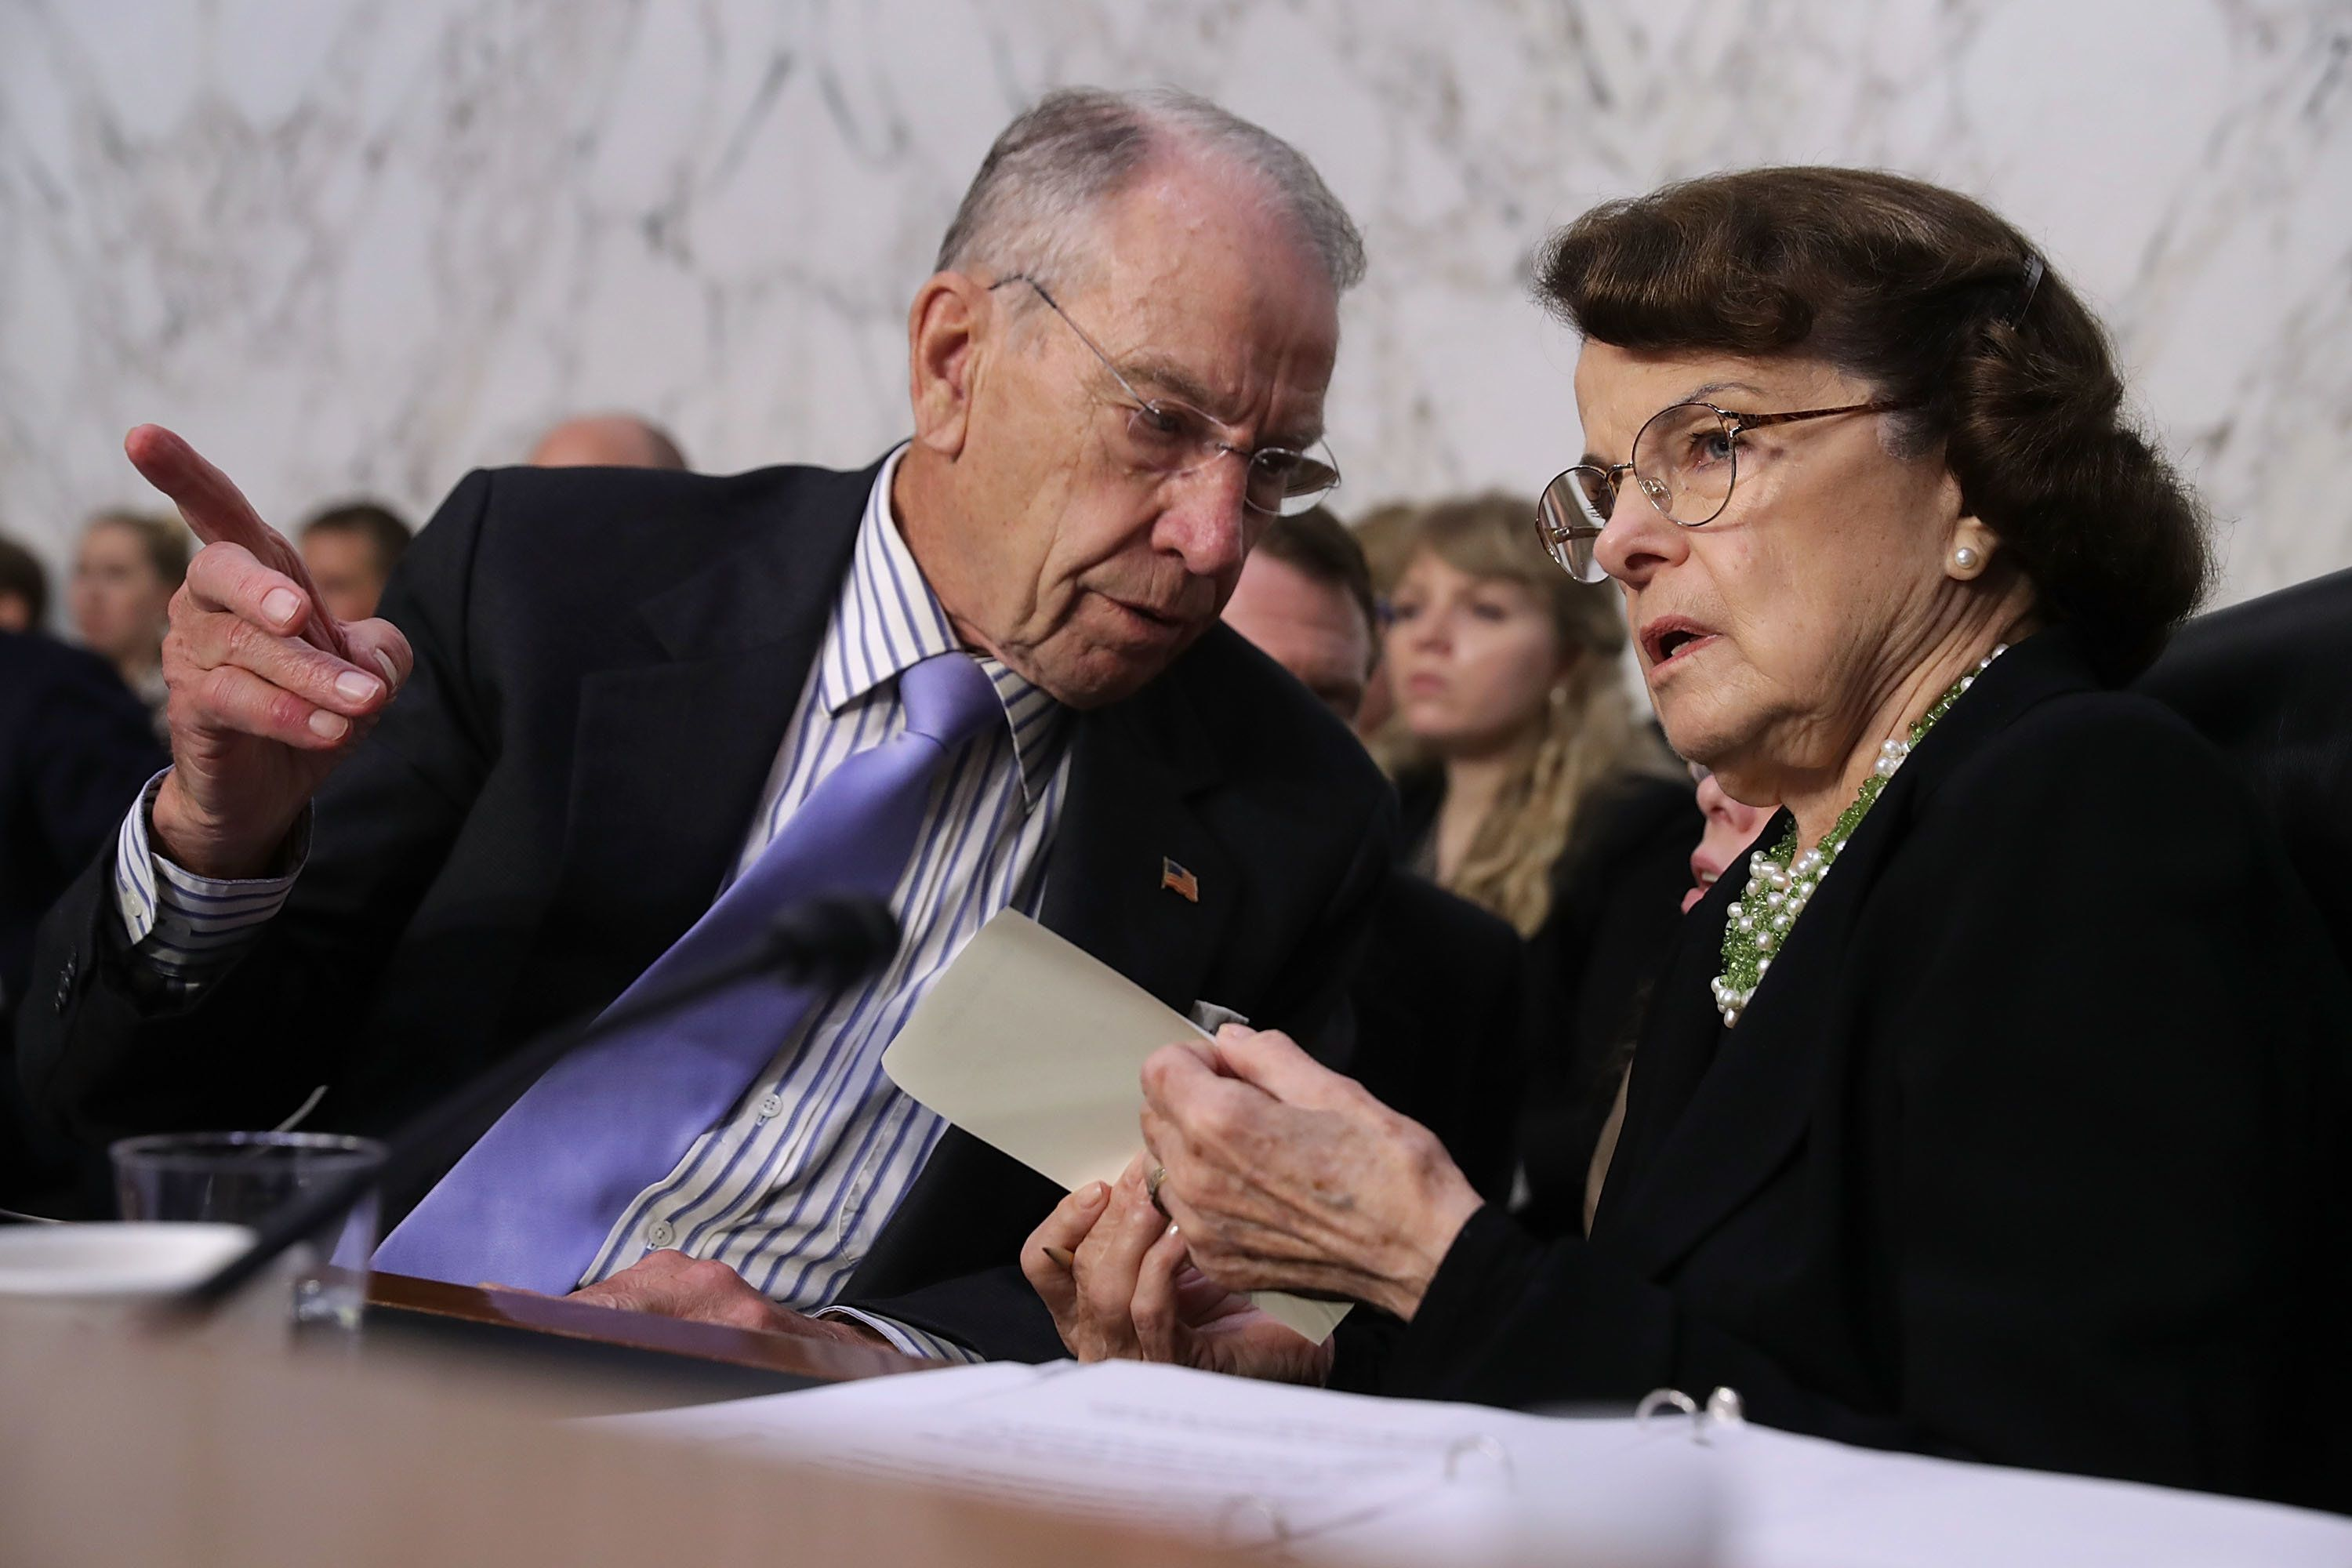 WASHINGTON, DC - SEPTEMBER 06:  Senate Judiciary Committee Chairman Charles Grassley (R-IA) (L) talks with ranking member Sen. Dianne Feinstein (D-CA) during the third day of Supreme Court nominee Judge Brett Kavanaugh's confirmation hearing in the Hart Senate Office Building on Capitol Hill September 6, 2018 in Washington, DC. Kavanaugh was nominated by President Donald Trump to fill the vacancy on the court left by retiring Associate Justice Anthony Kennedy.  (Photo by Chip Somodevilla/Getty Images)